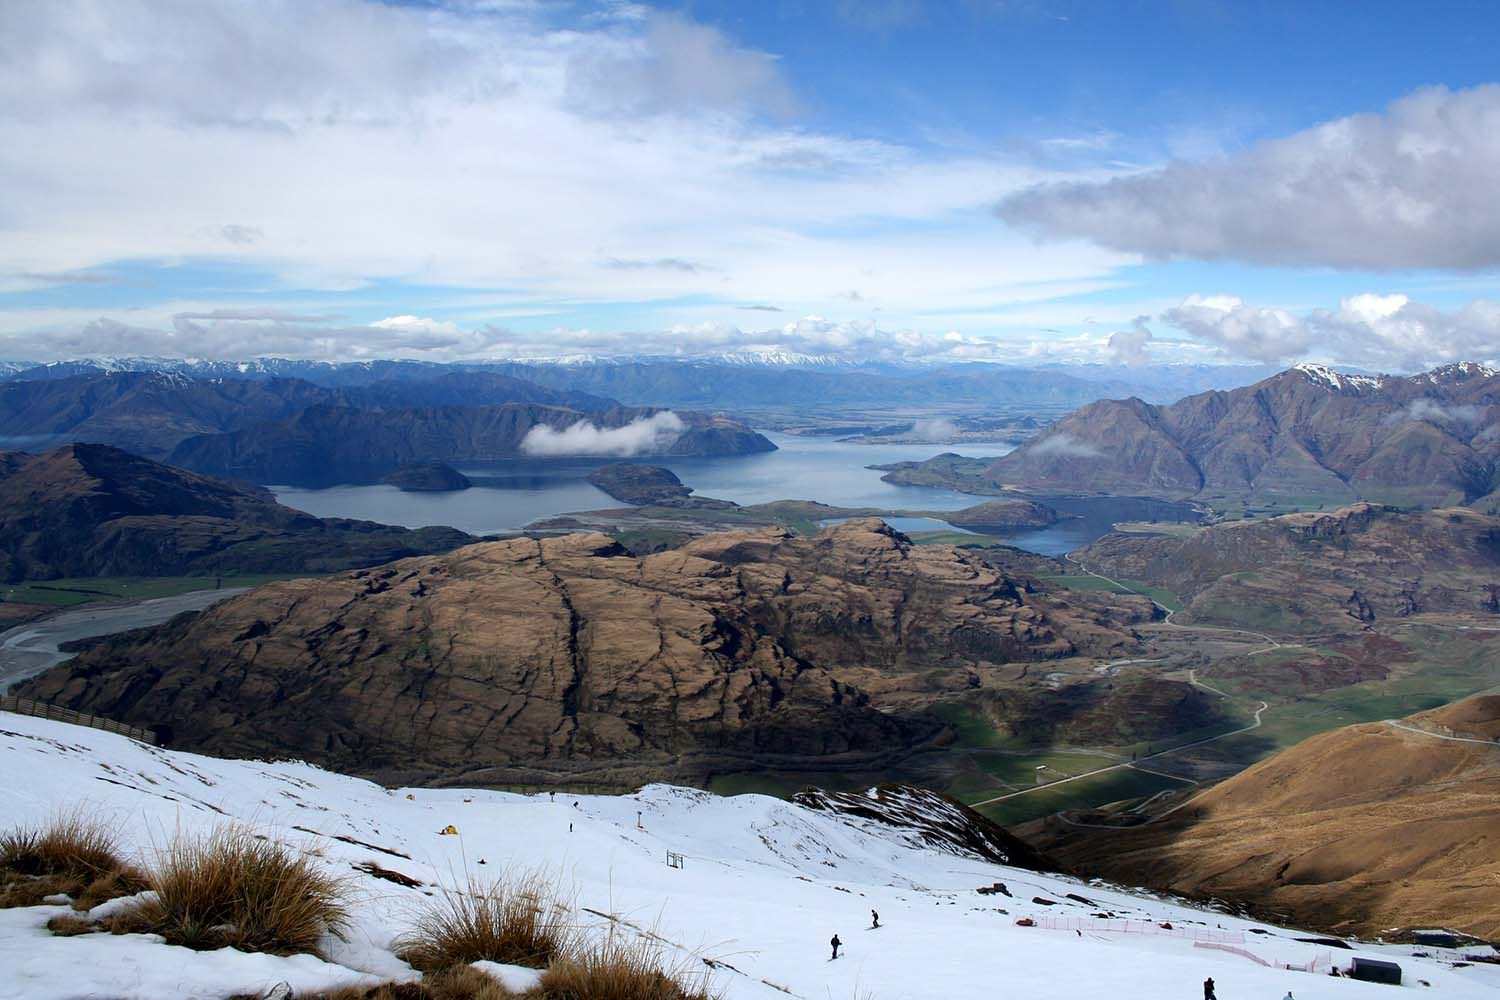 Treble Cone Station with a view of Lake Wānaka, NZ © ArmelleSolelhac